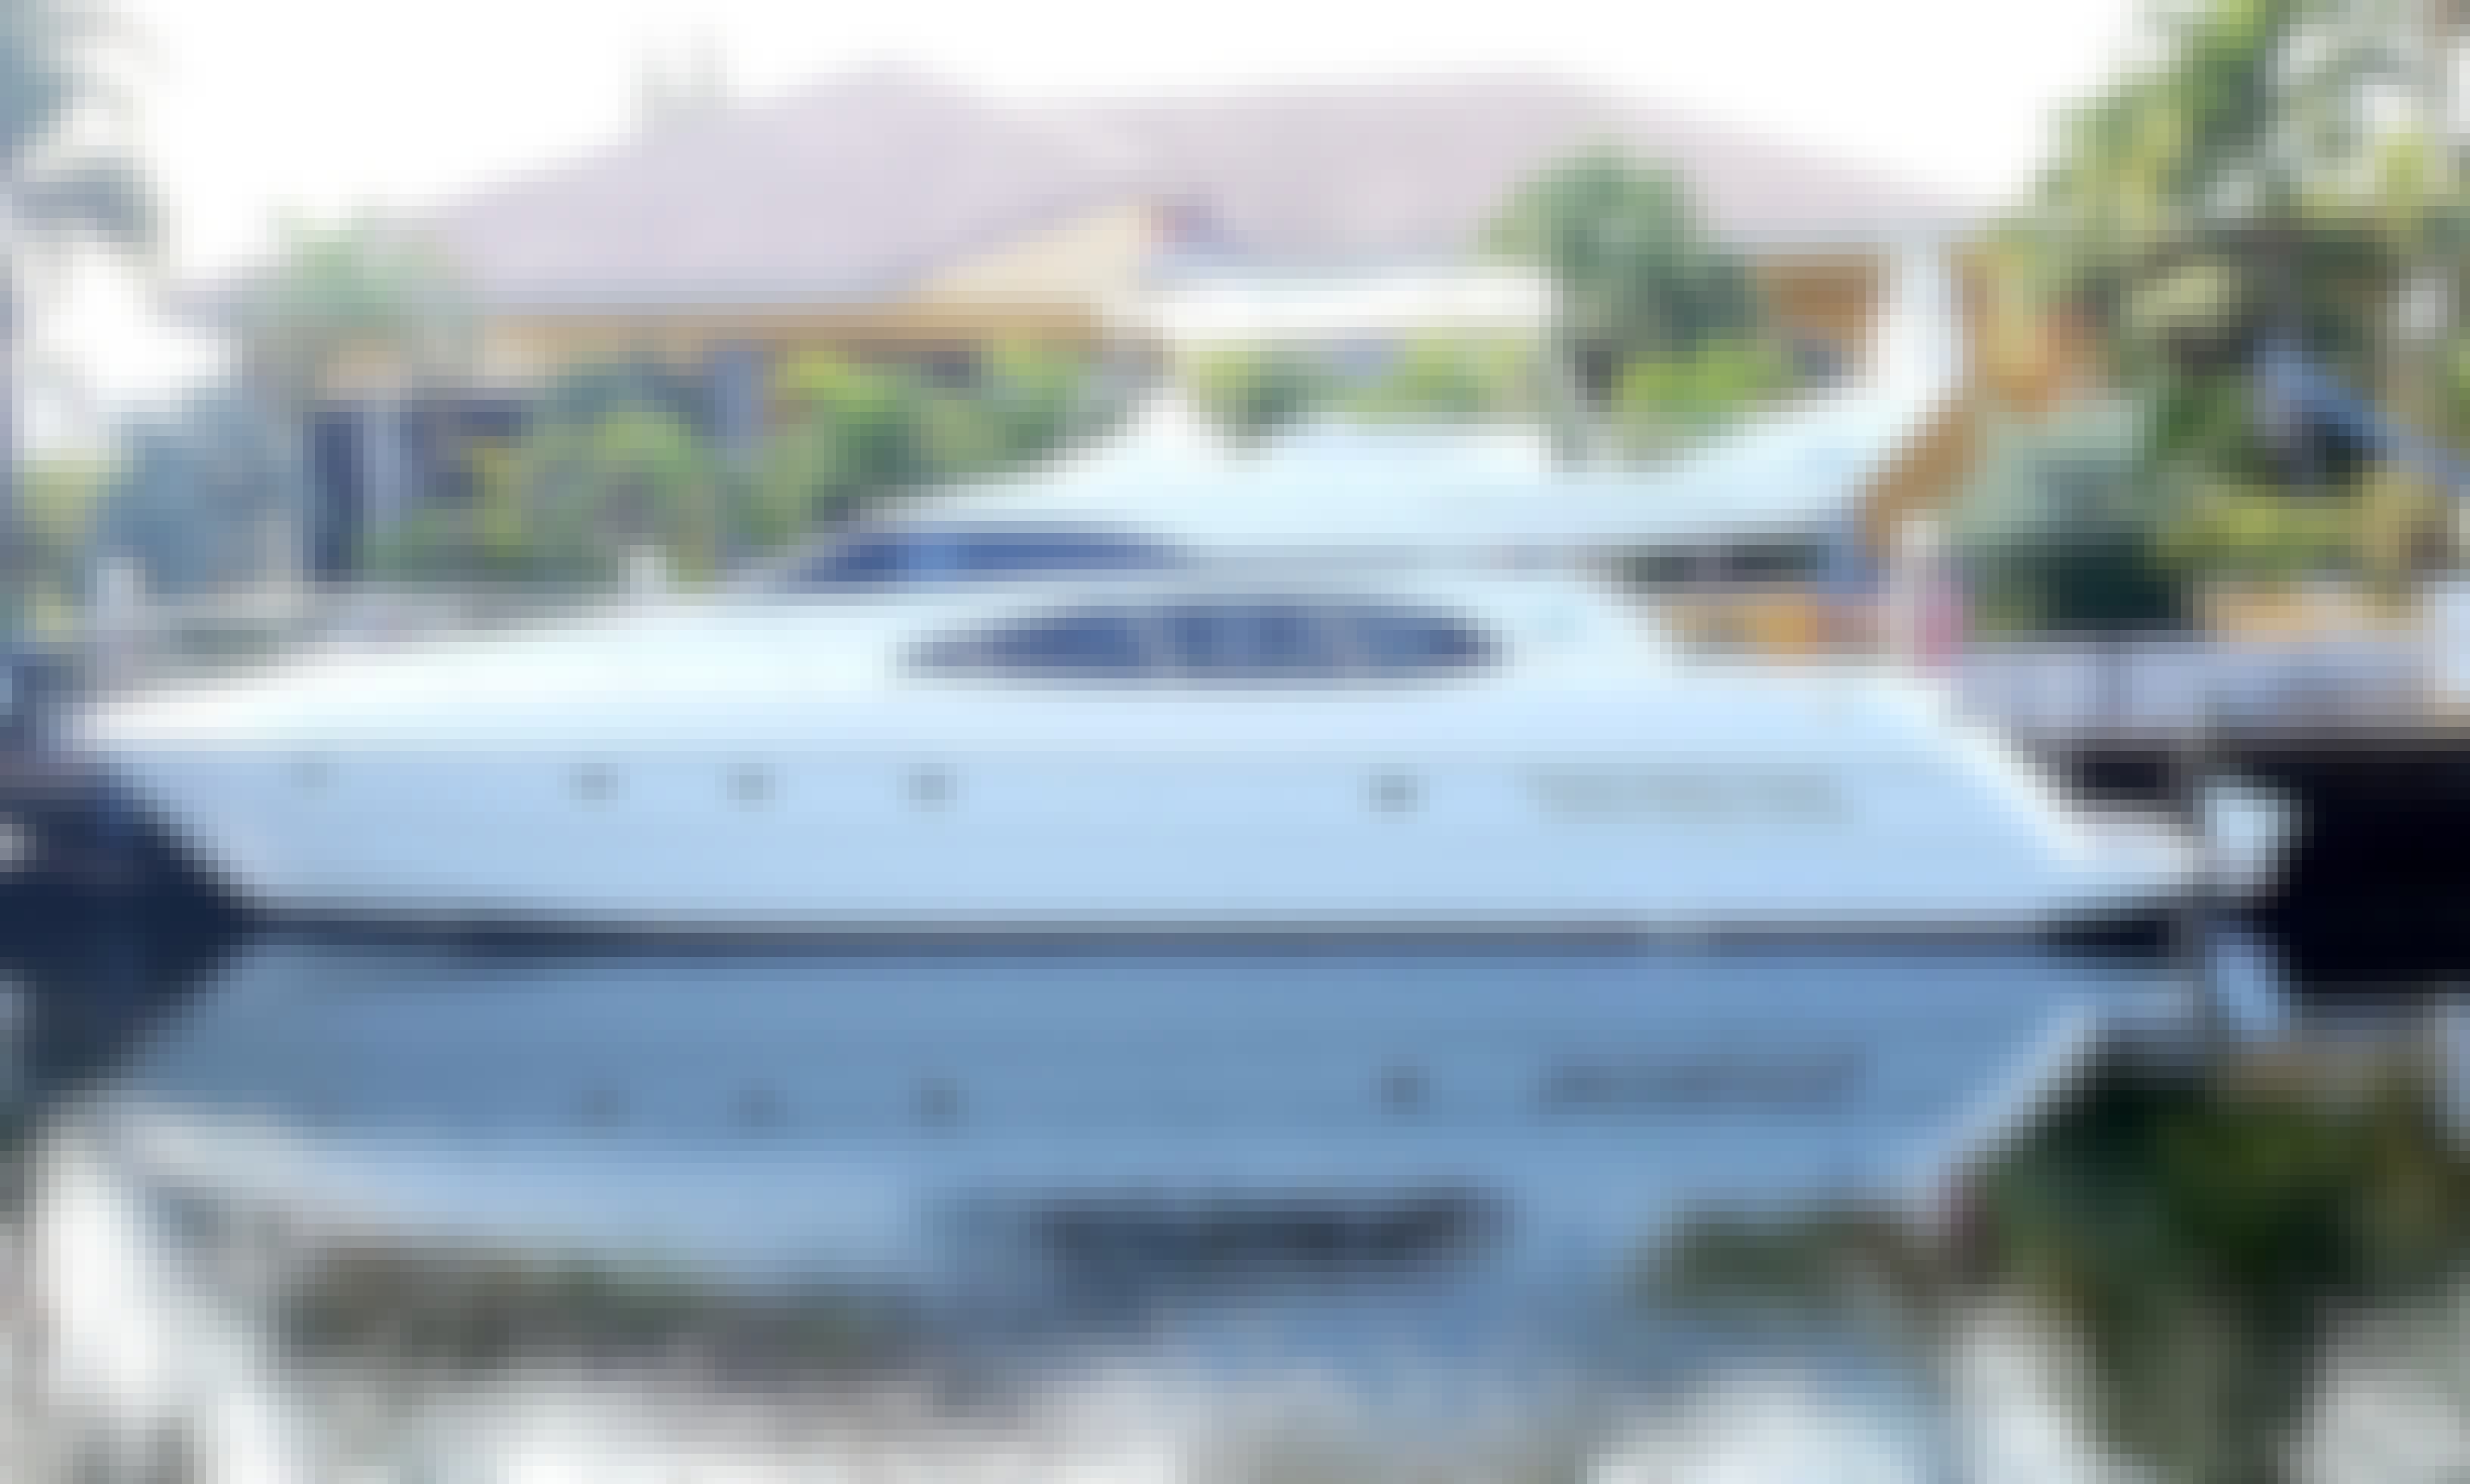 Charter a Luxury 58' AZIMUT Motor Yacht for 13 People in Fort Lauderdale, FL